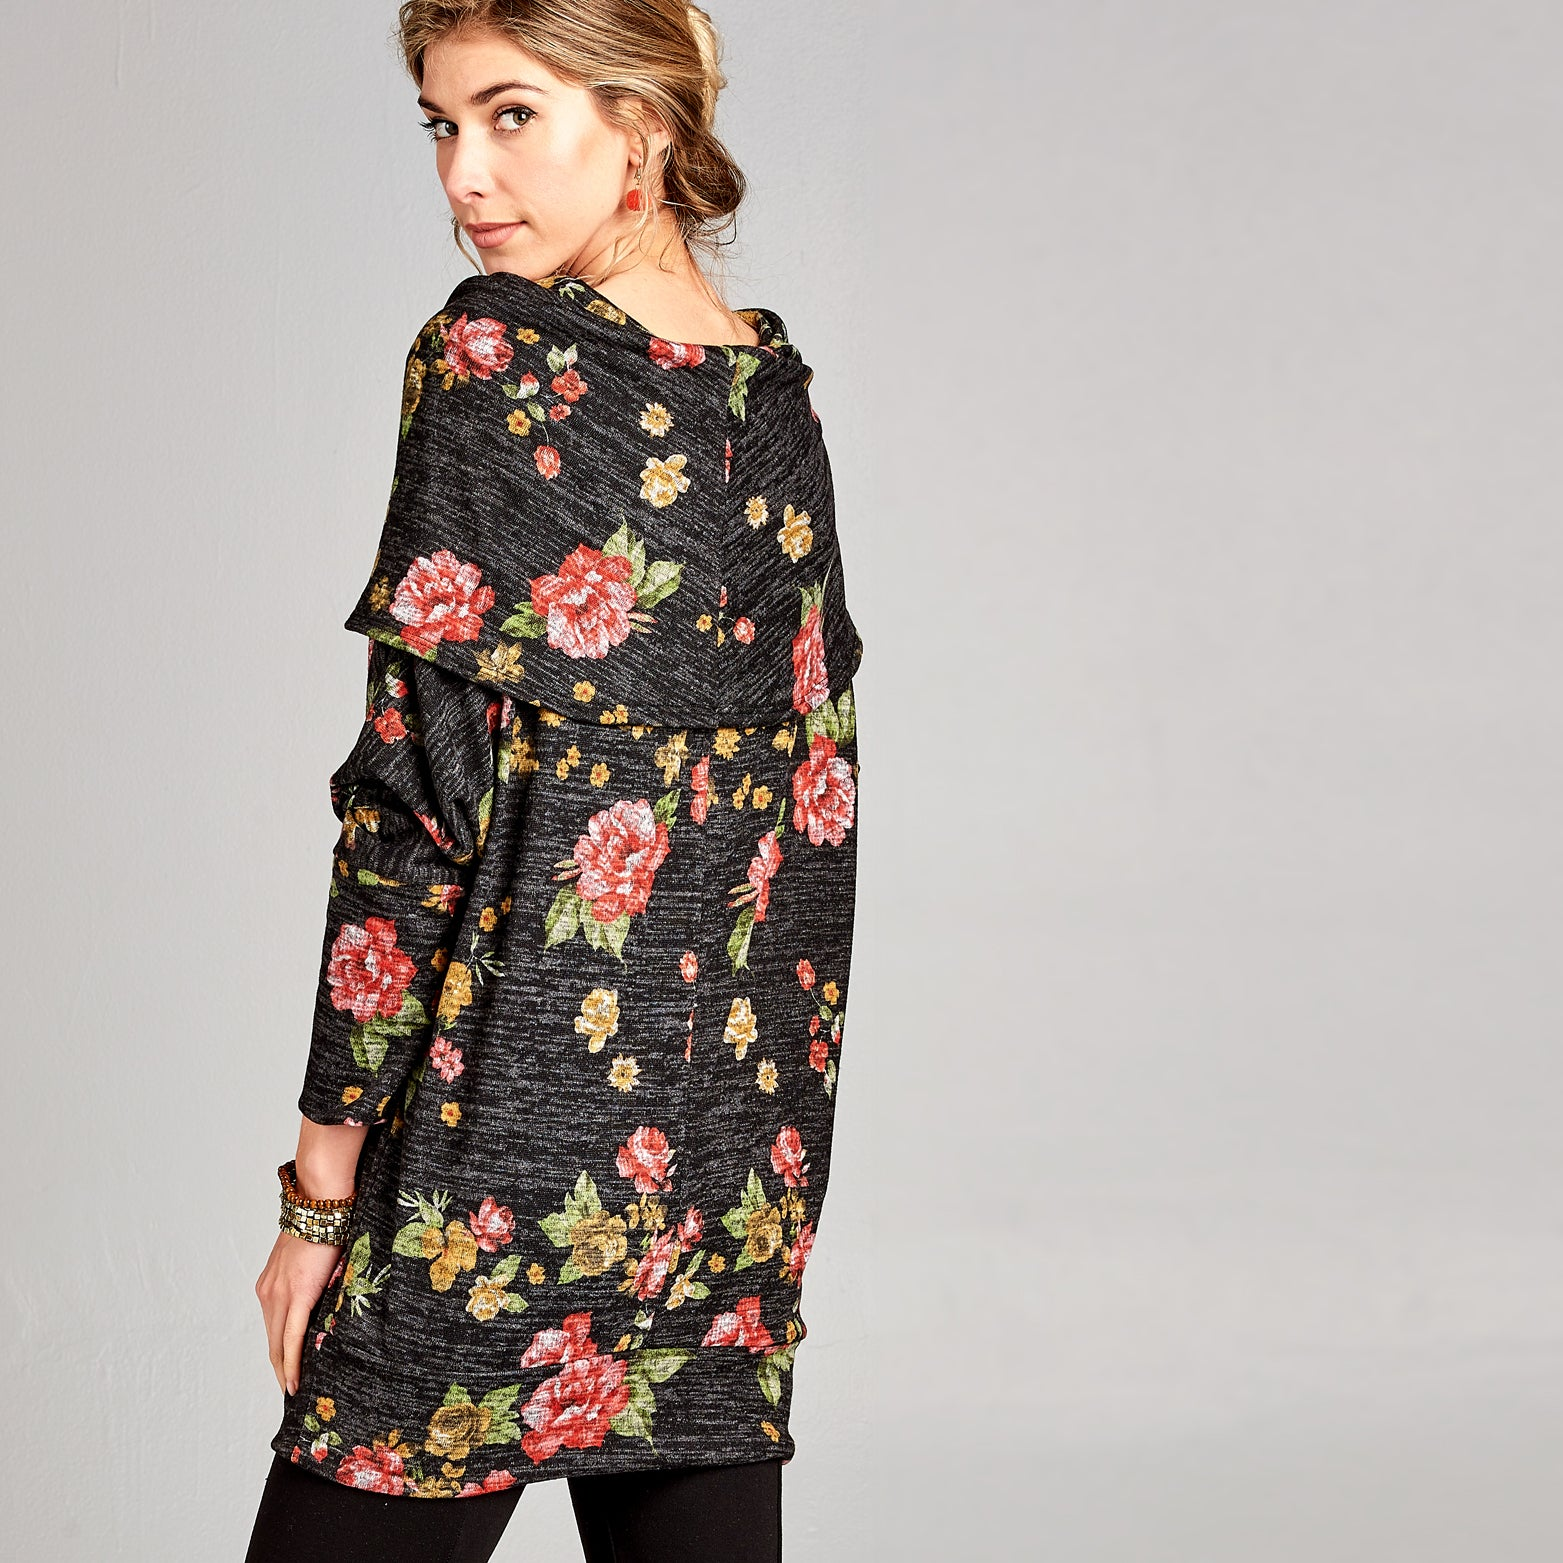 Oversized Cowl Neck Floral Sweater - Love, Kuza